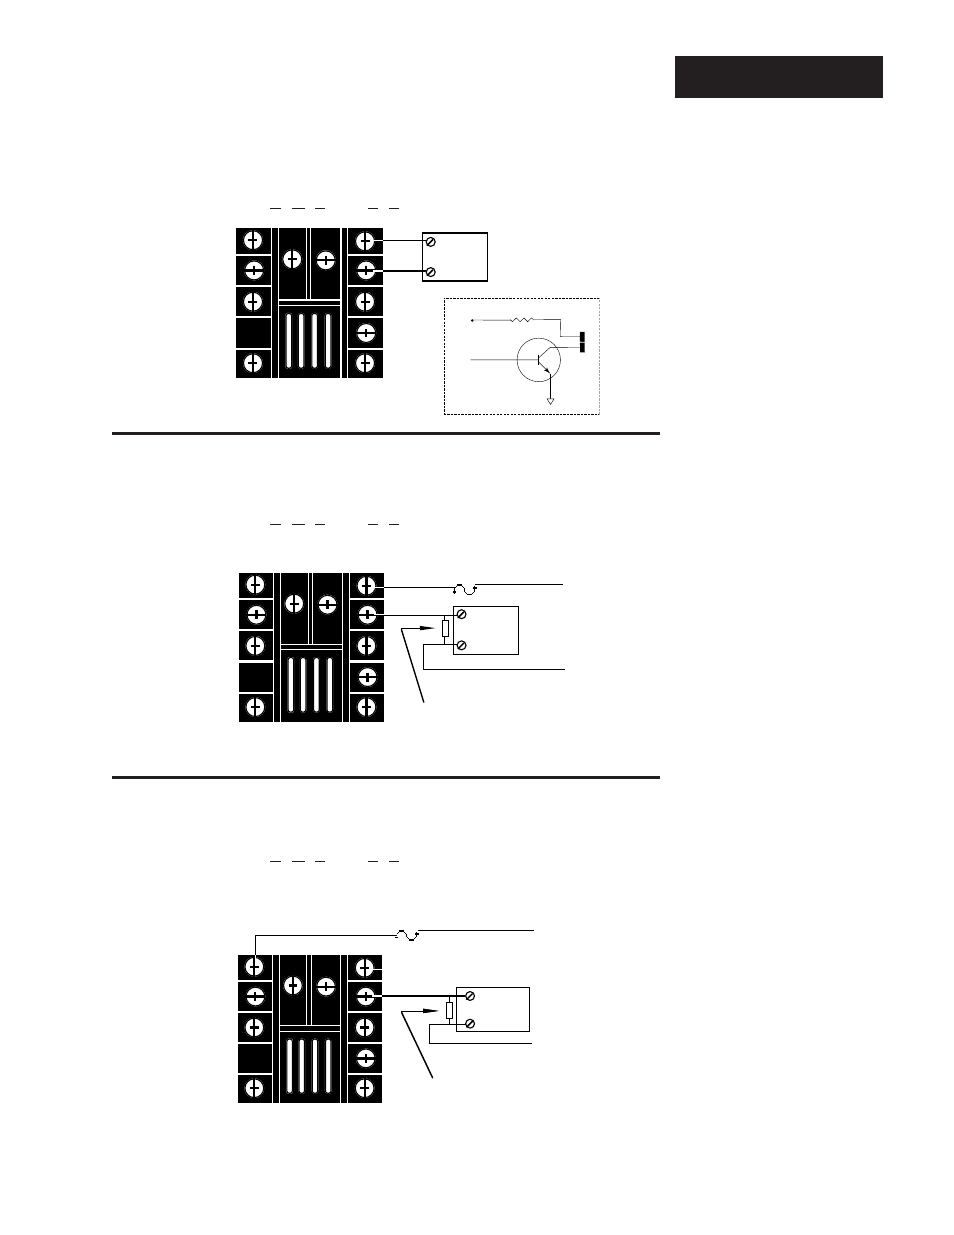 Watlow Solid State Relay Schematic To Pin On Pinterest Relays Switched